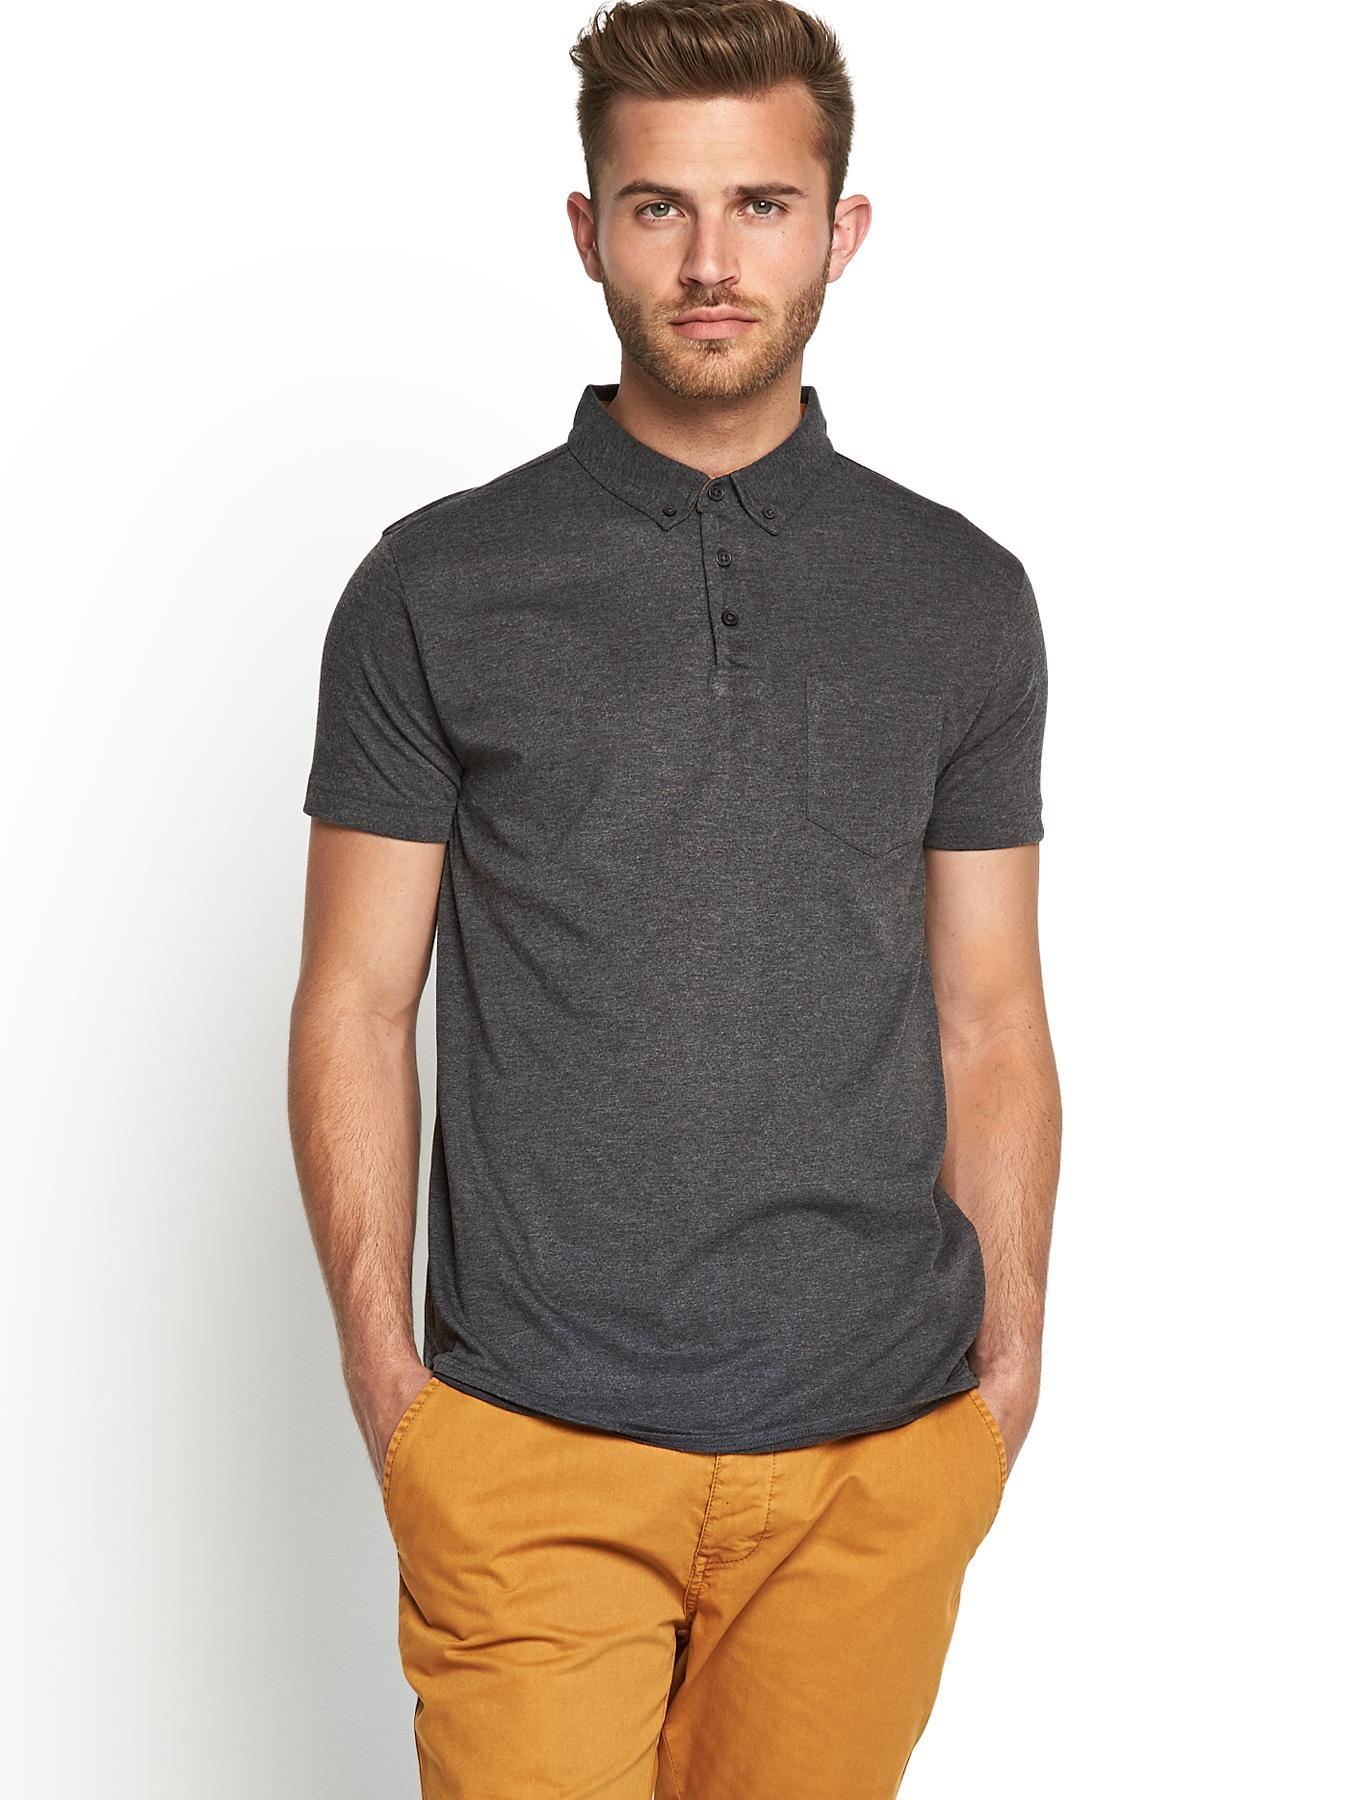 Short Sleeve Slim Fit Mens Jersey Polo Shirt, Grey at Littlewoods